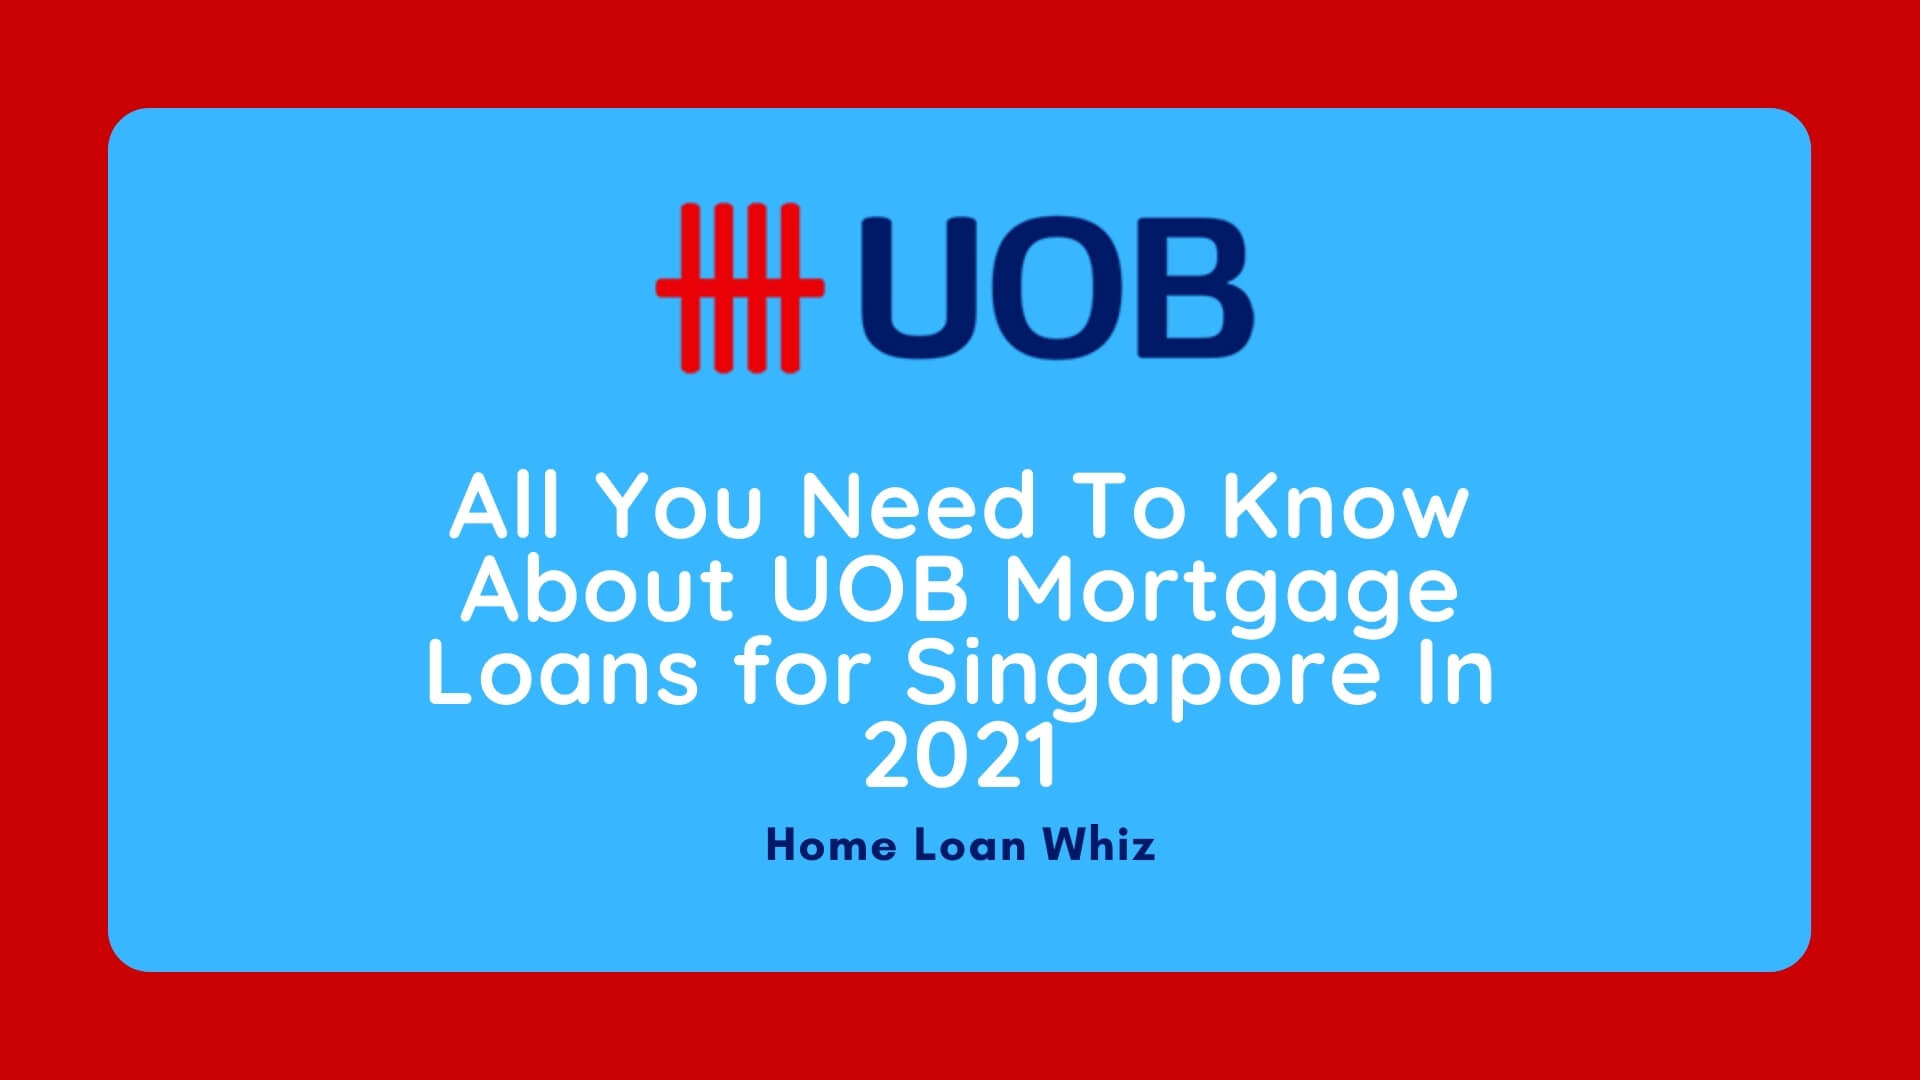 All You Need To Know About UOB Mortgage Loans for Singapore In 2021